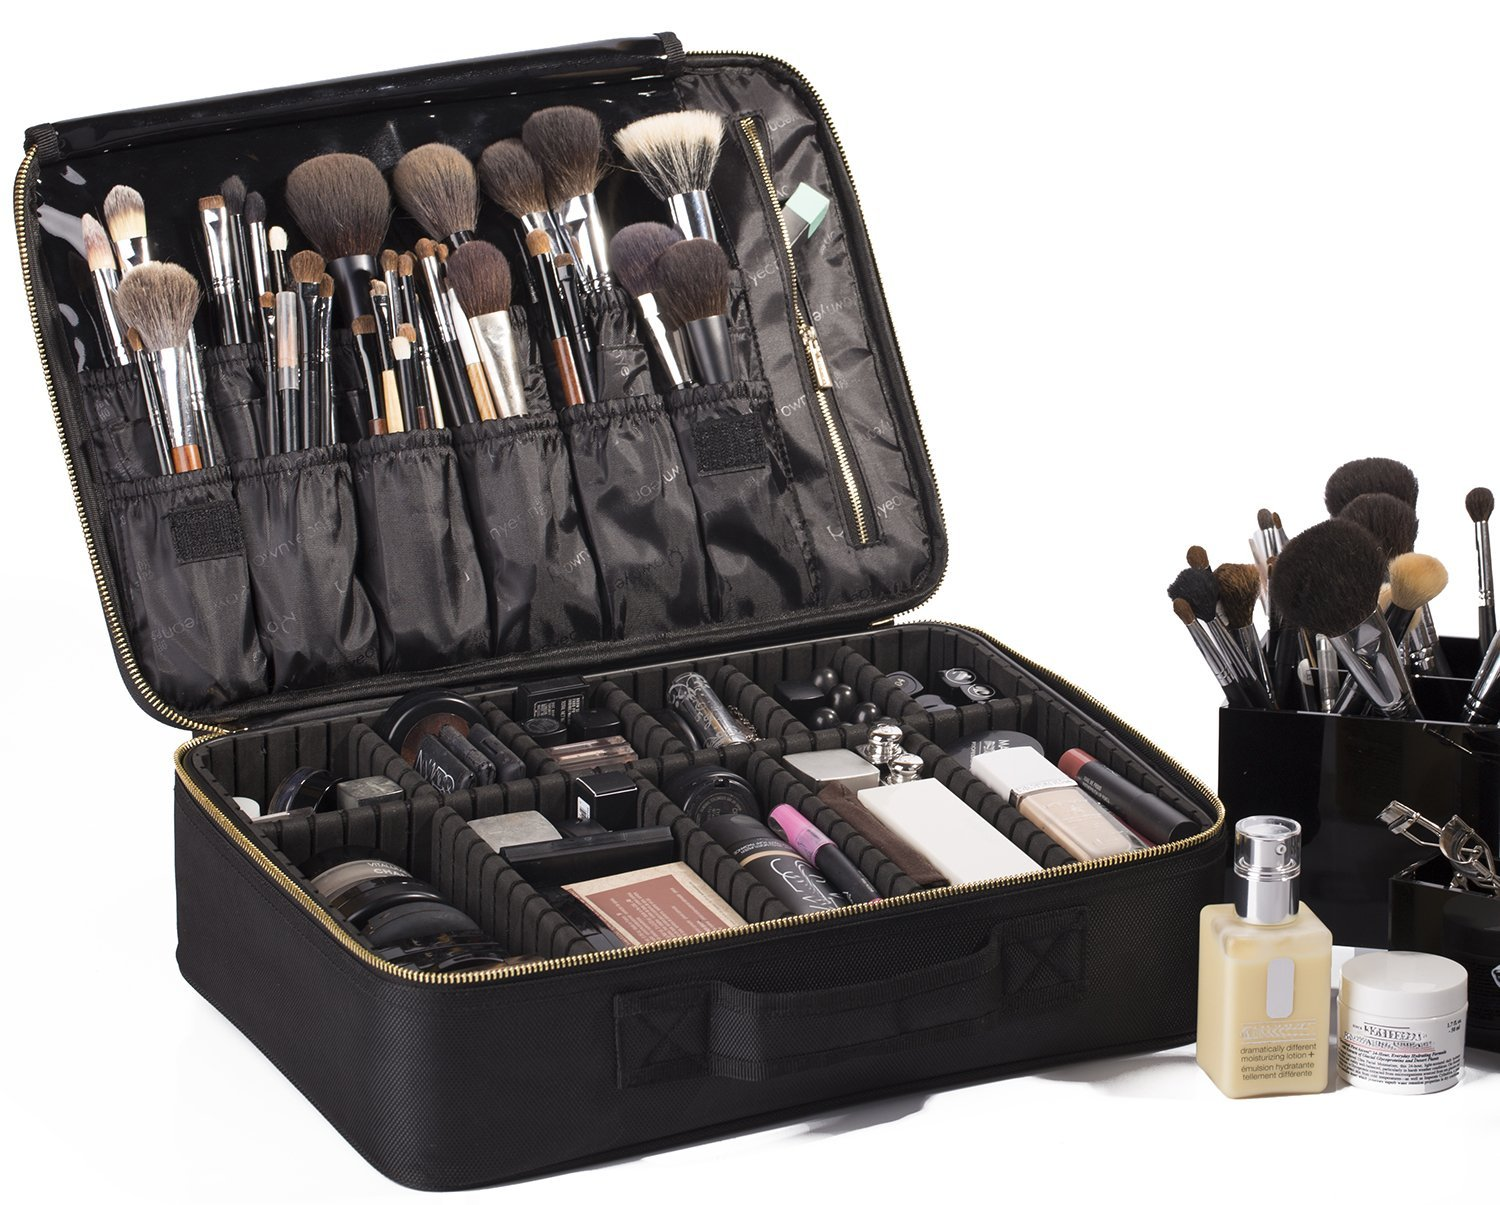 rownyeon portable travel makeup bag makeup. Black Bedroom Furniture Sets. Home Design Ideas